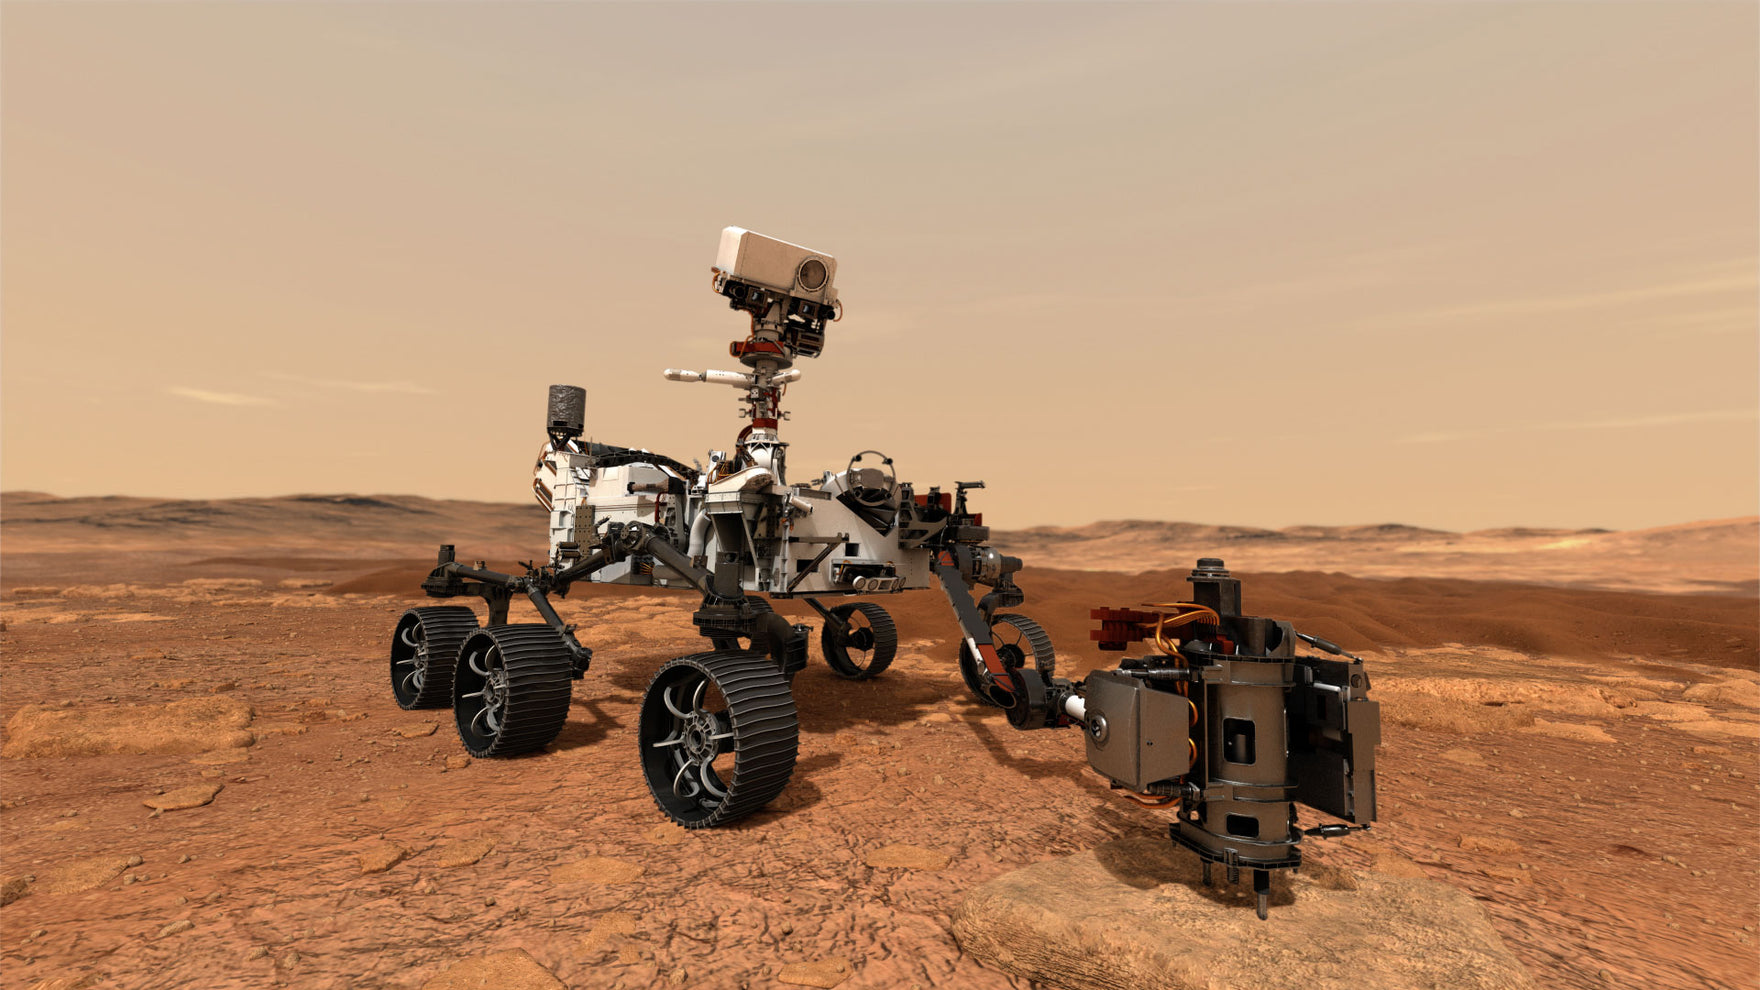 Life On Mars? Watch NASA's Perseverance Rover Start Its Journey To The Red Planet